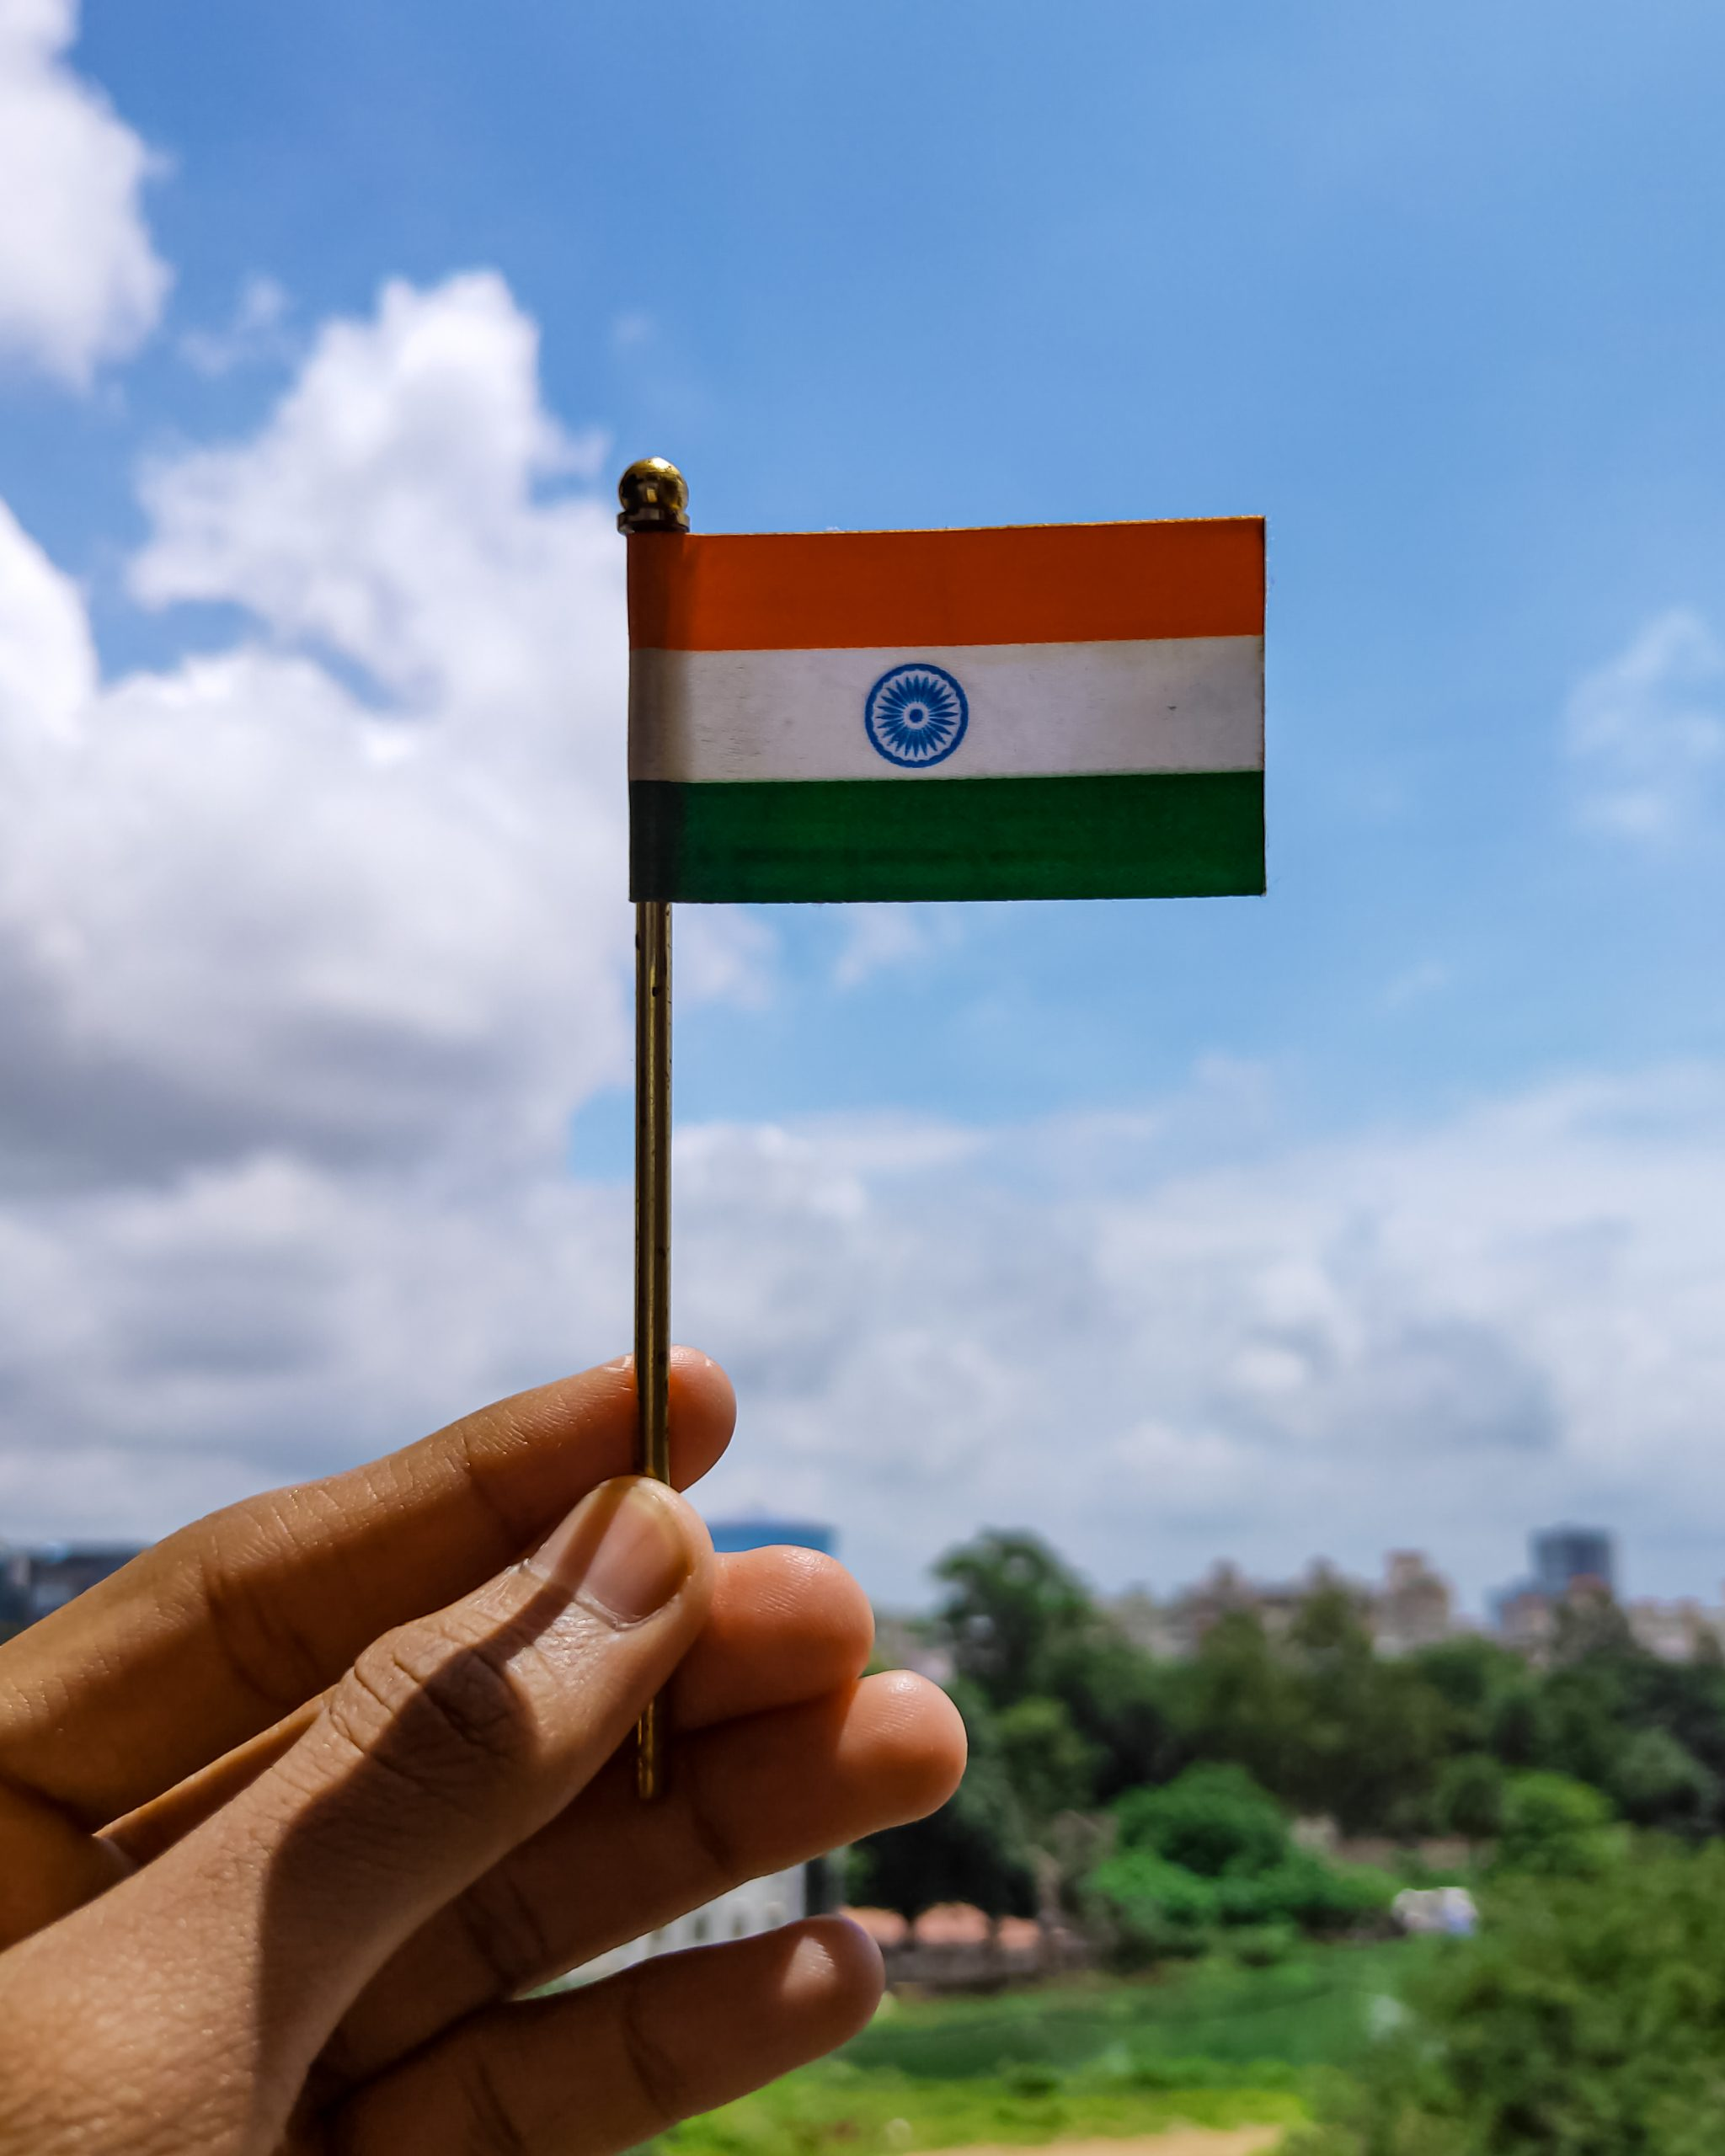 Holding Indian flag in hand